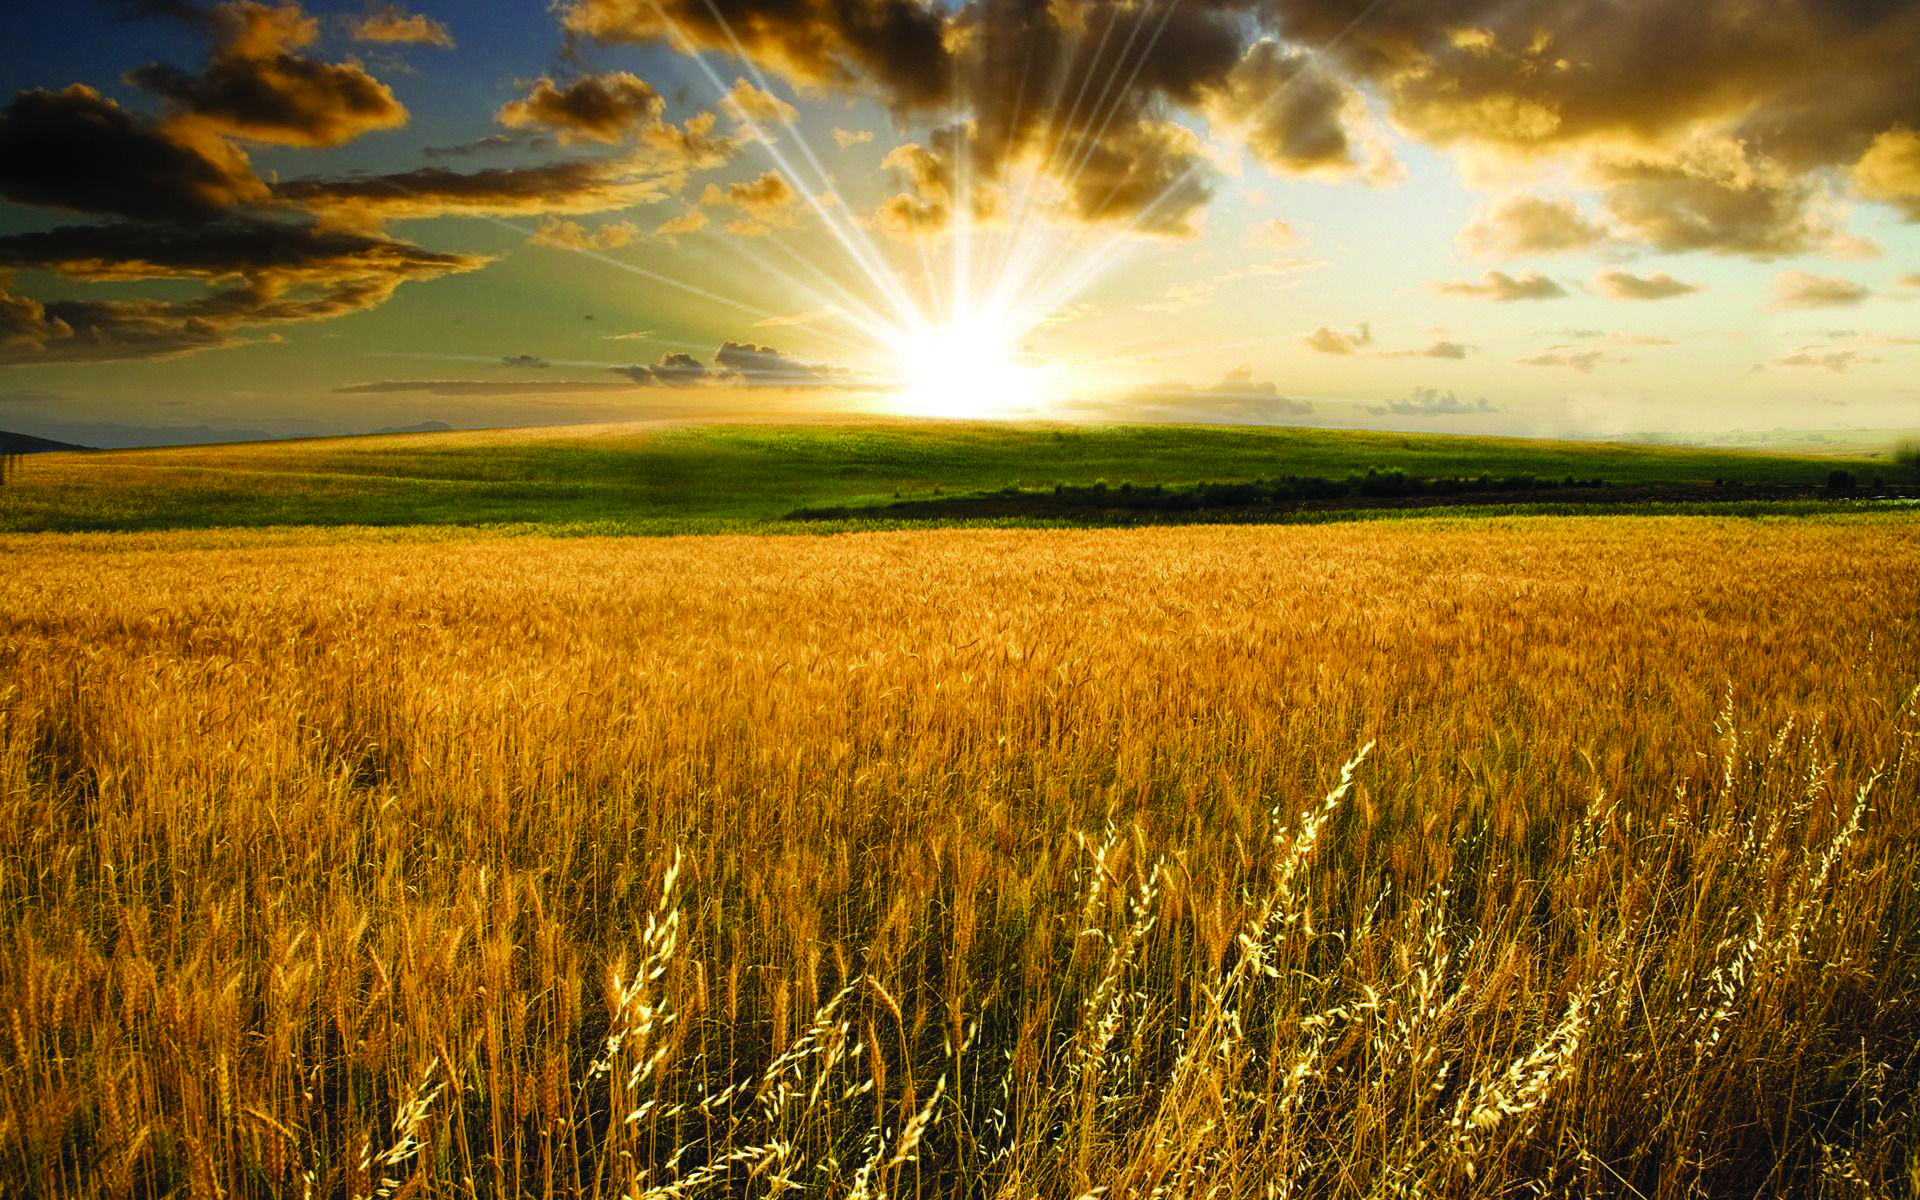 Wheat Field - Golden.jpg